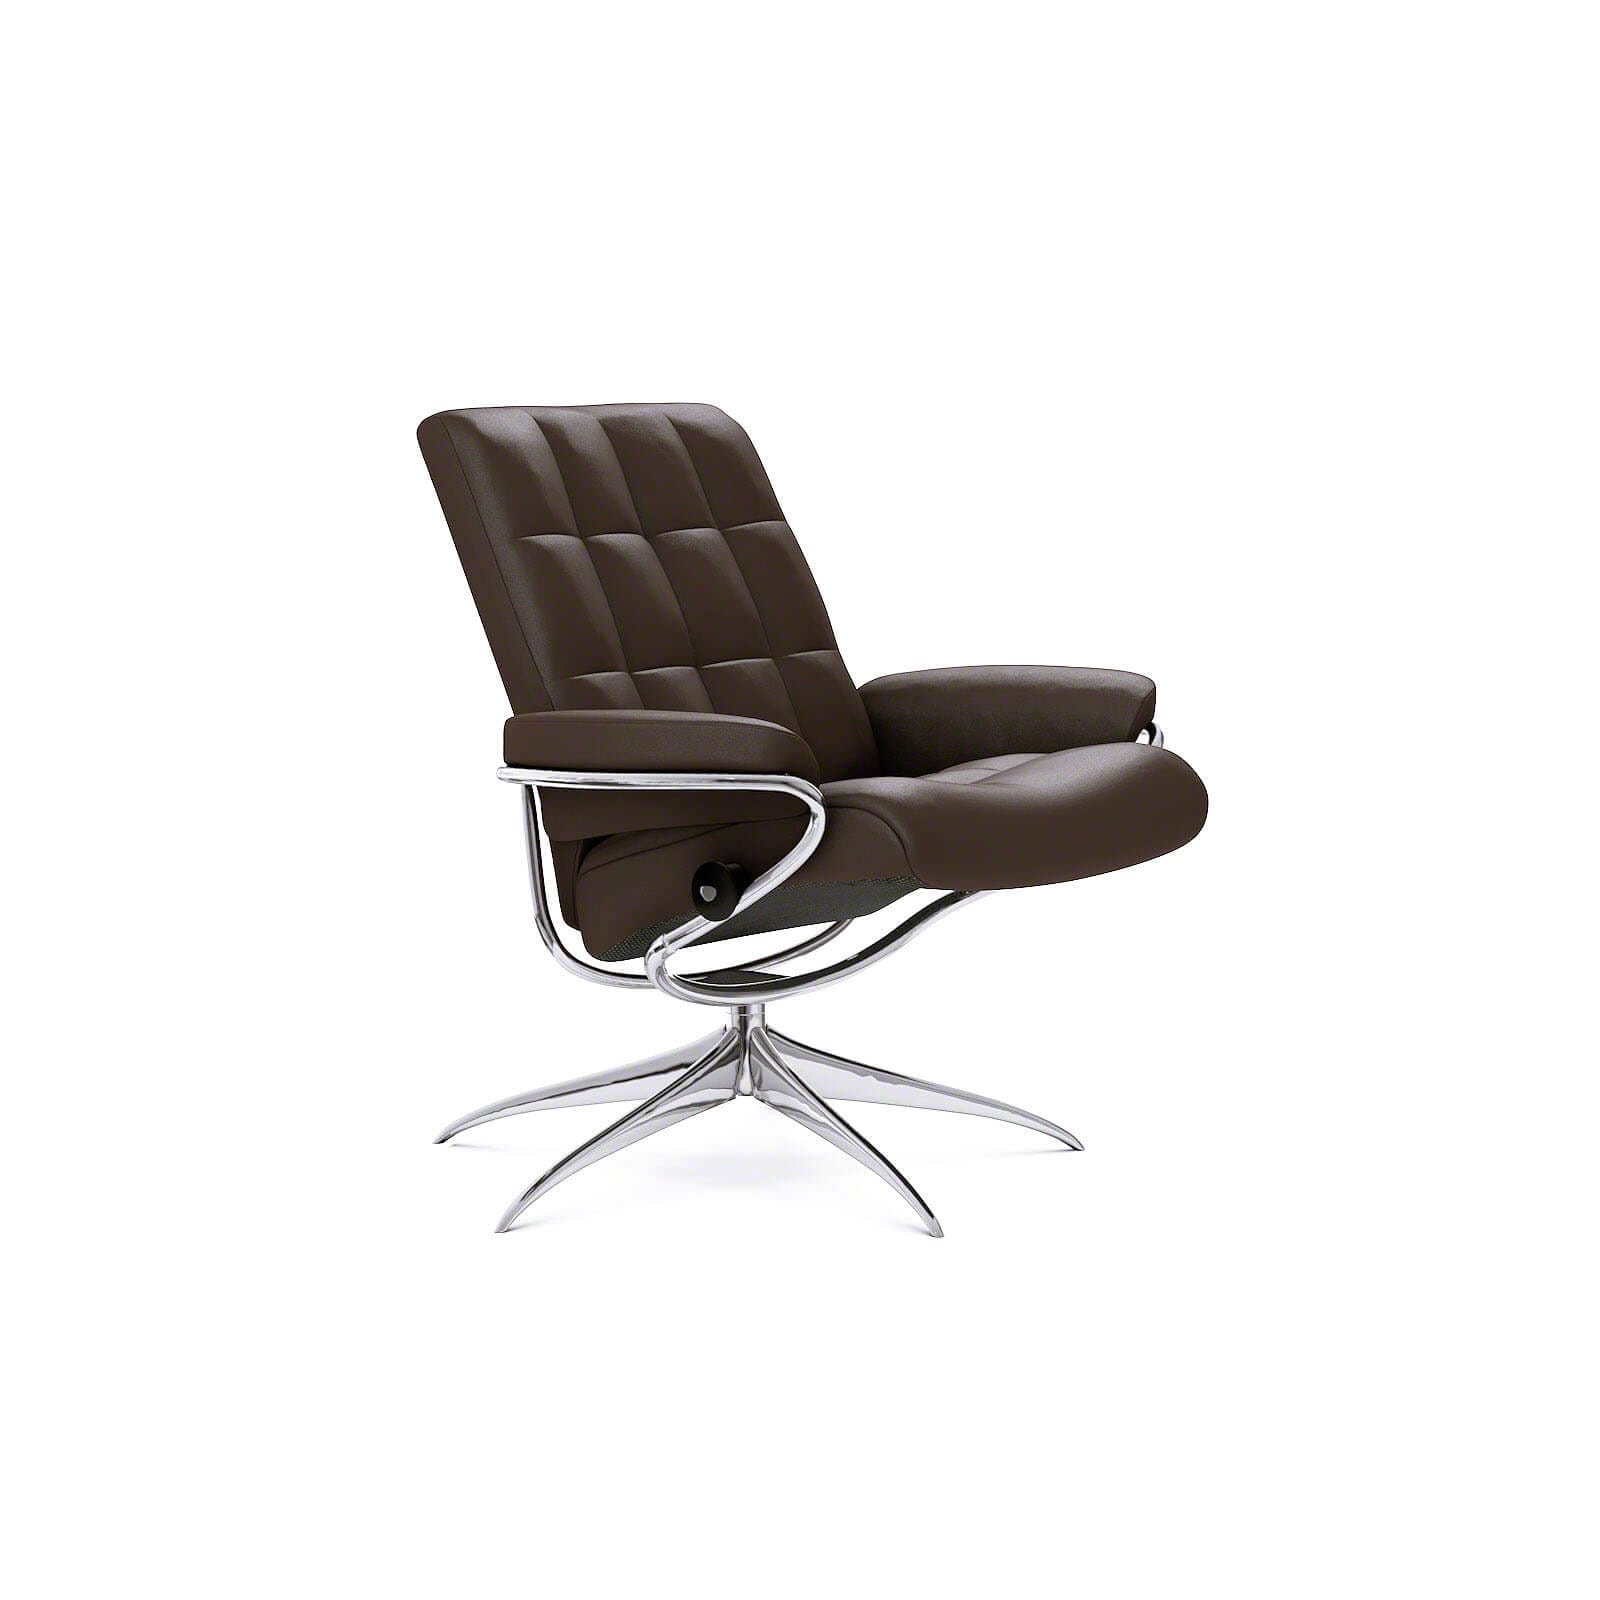 Stressless Consul Test Stressless London Sessel Niedrige Lehne Paloma Chestnut